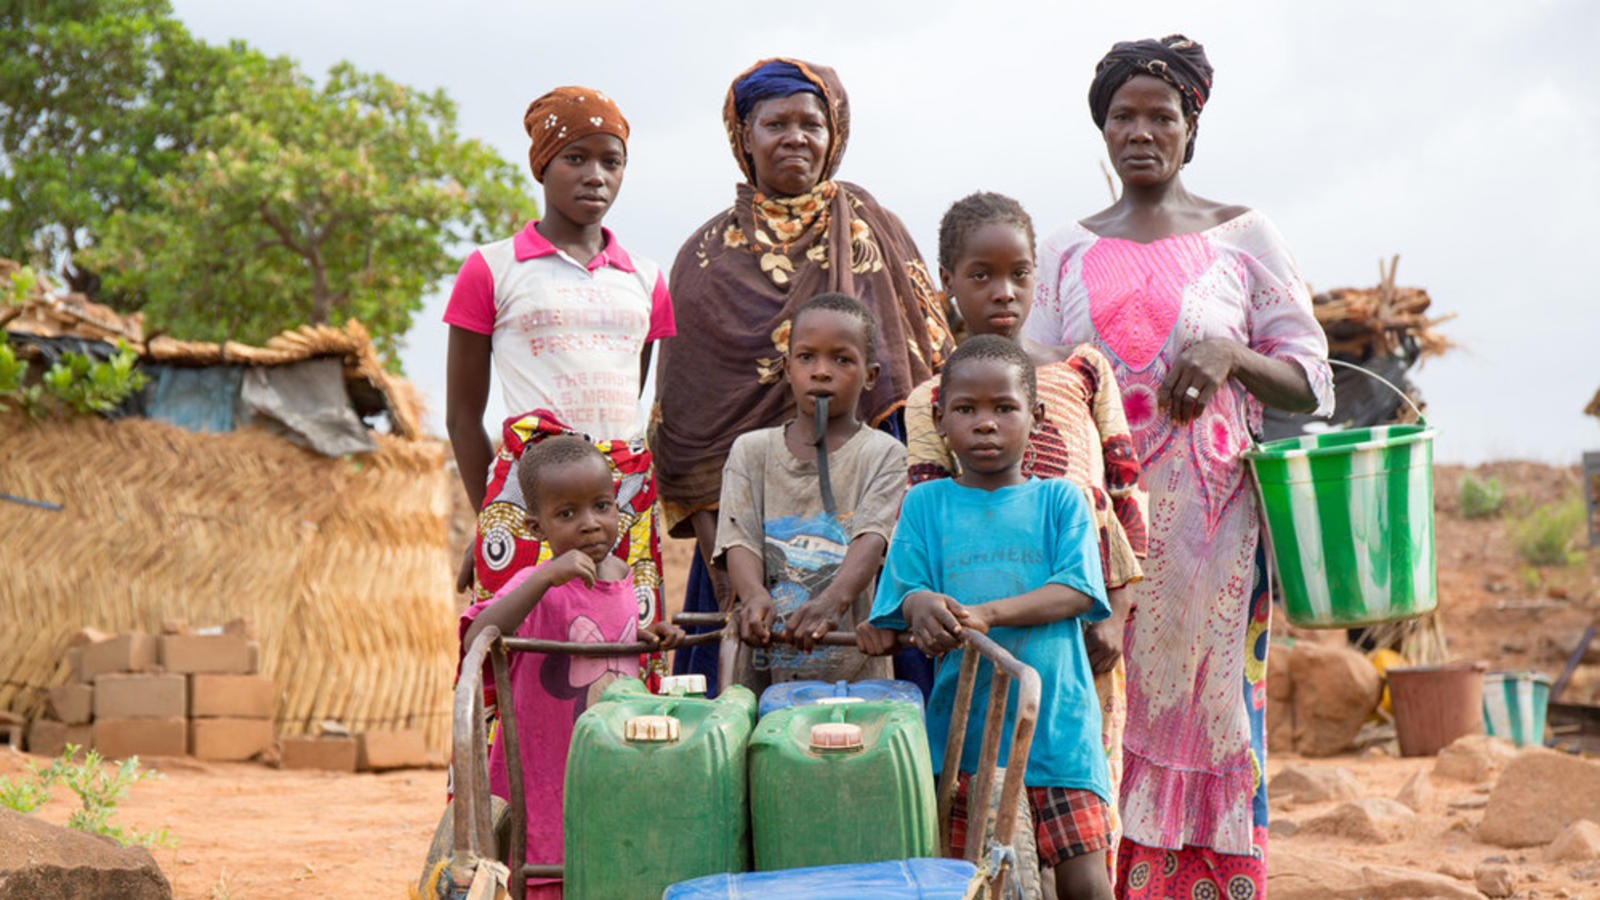 A family in Mali poses with the containers they use to collect water.